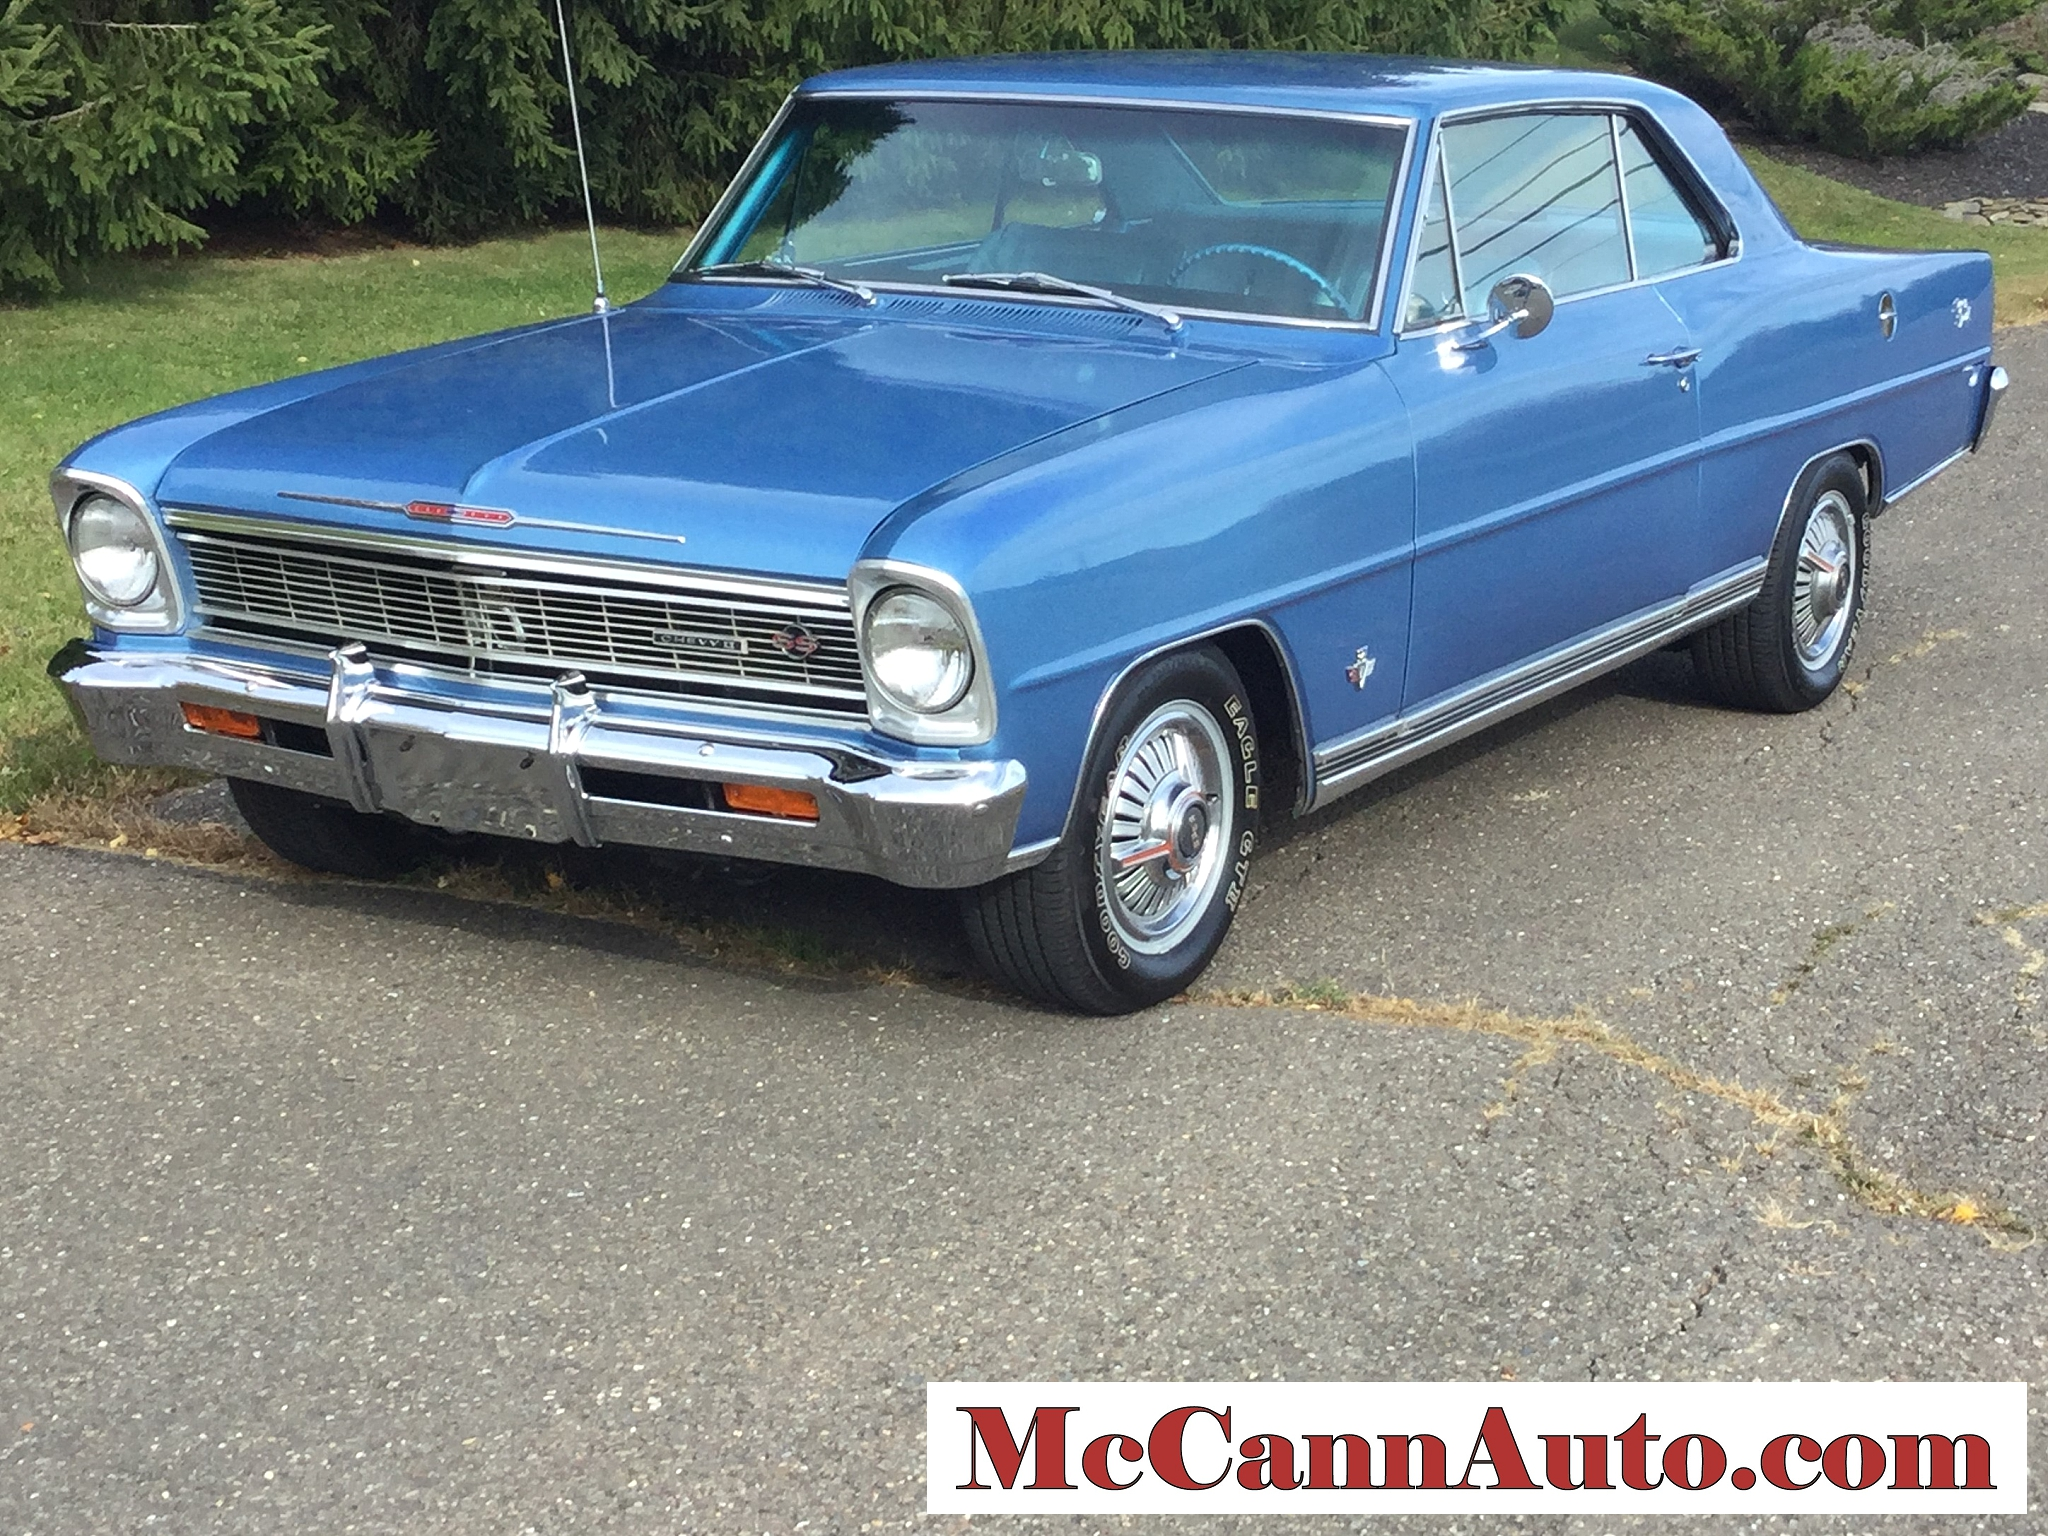 1966 Chevrolet Nova SS in Marina Blue